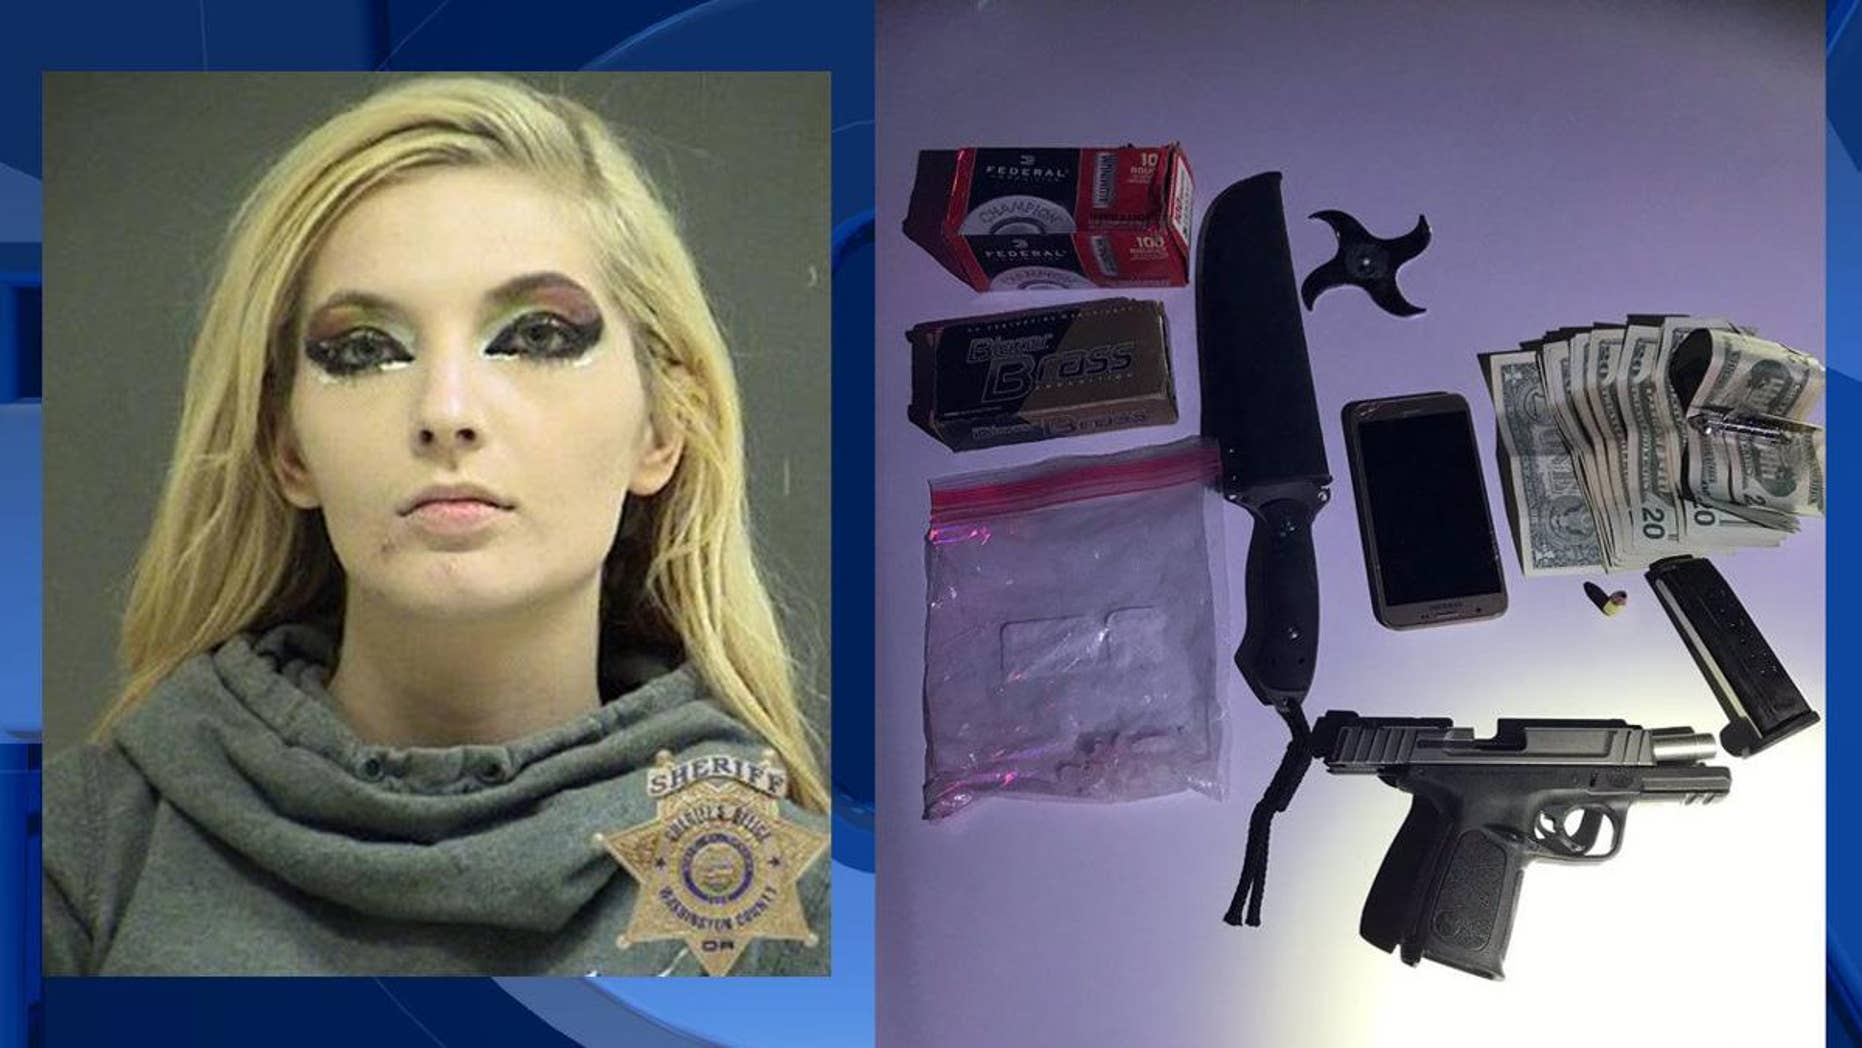 Katheline Test, 22, was busted with having meth, a handgun, and other restricted weapons in Aloha, Oregon.